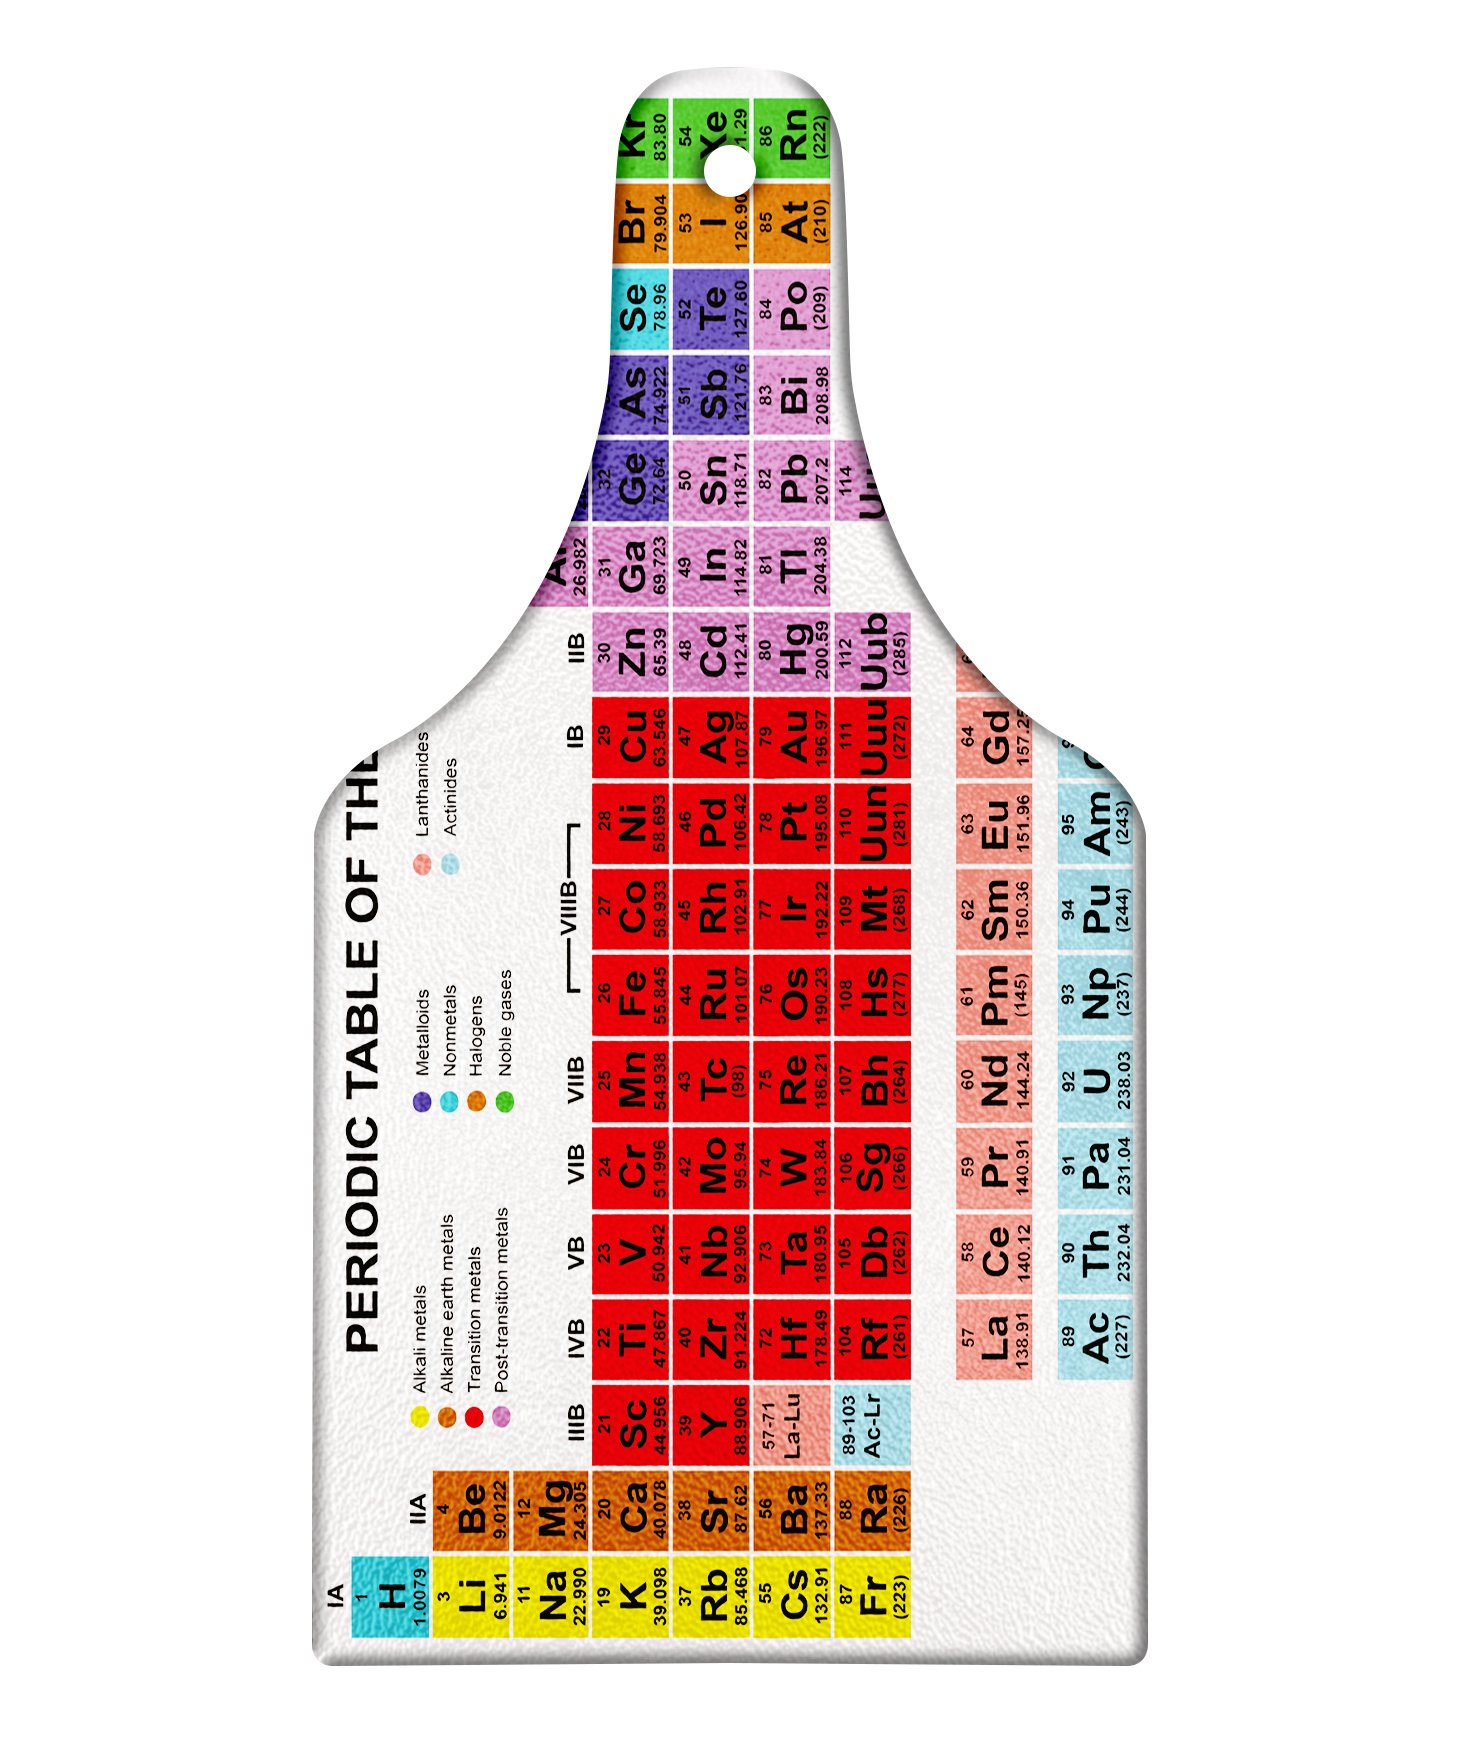 Ambesonne Periodic Table Cutting Board, Kids Children Educational Science Chemistry for School Students Teachers Art, Decorative Tempered Glass Cutting and Serving Board, Wine Bottle Shape, Multicolor